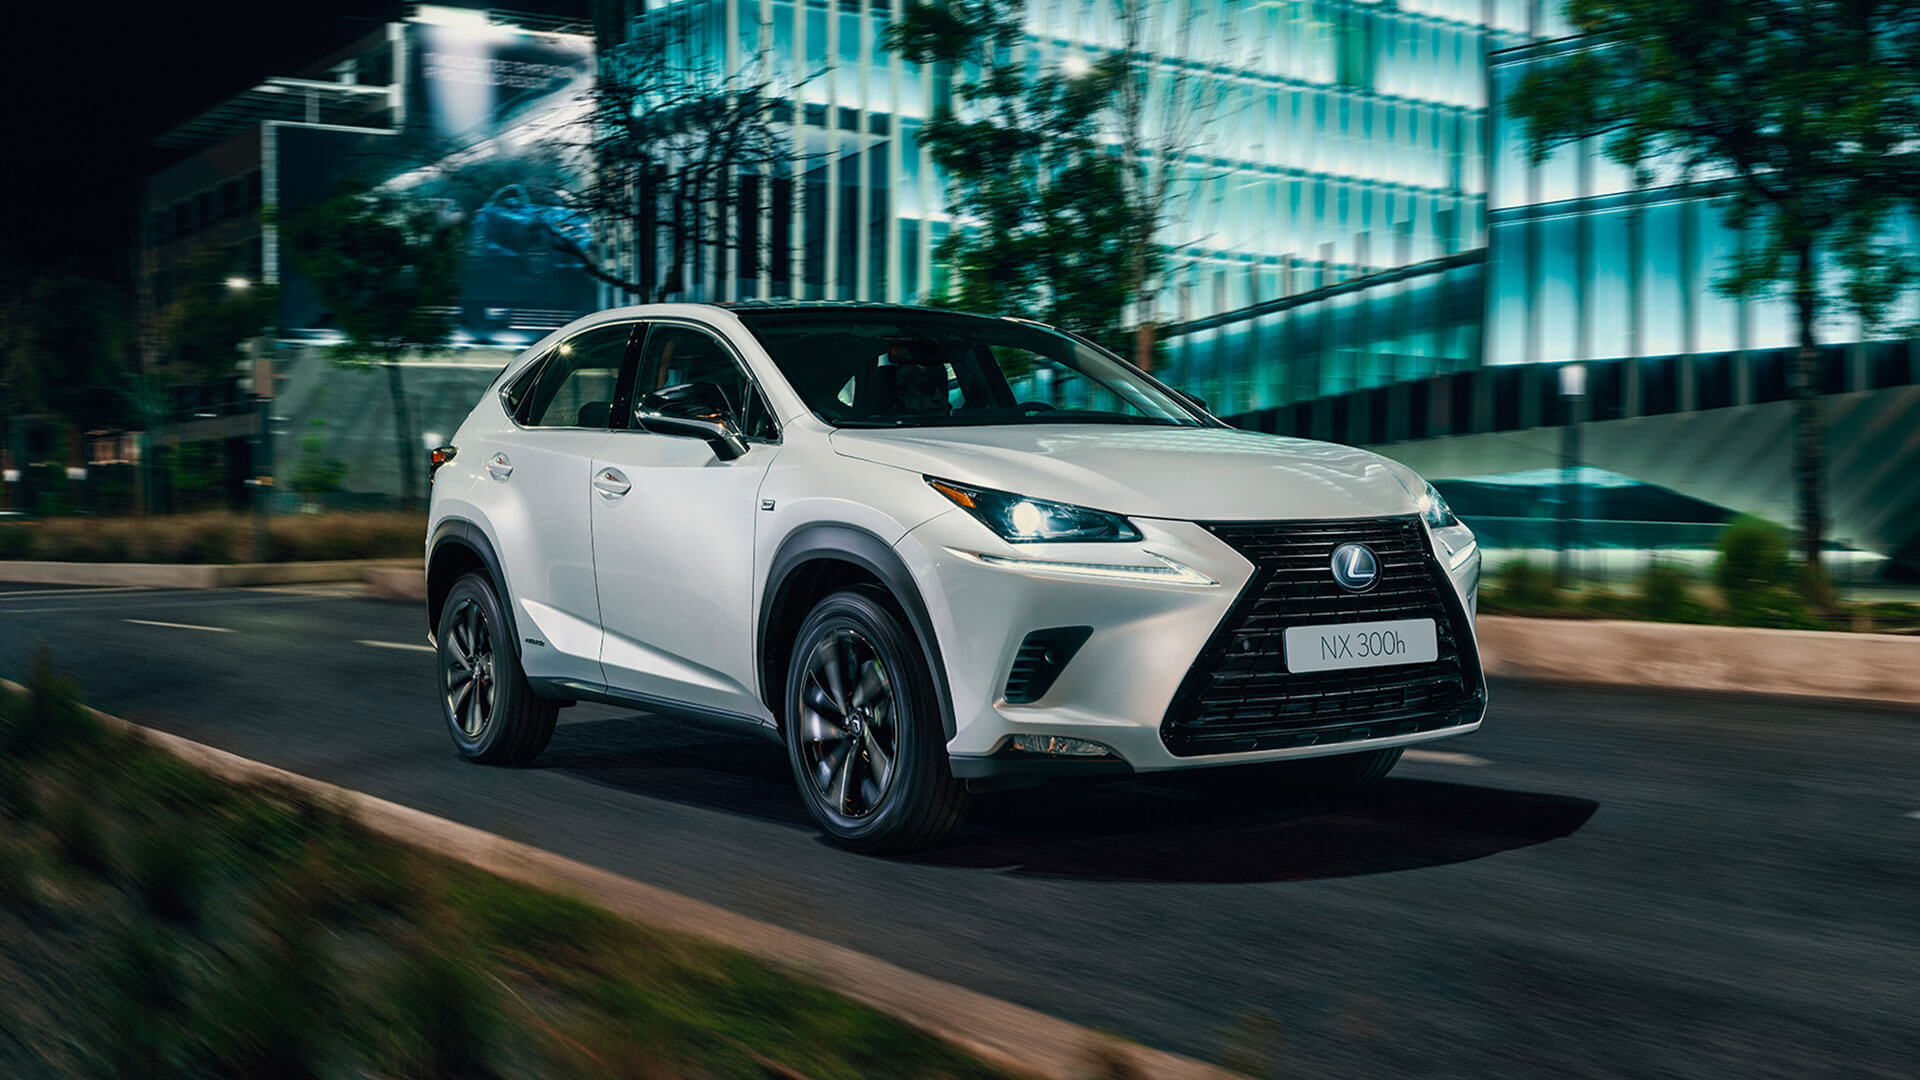 2019 lexus model names nx